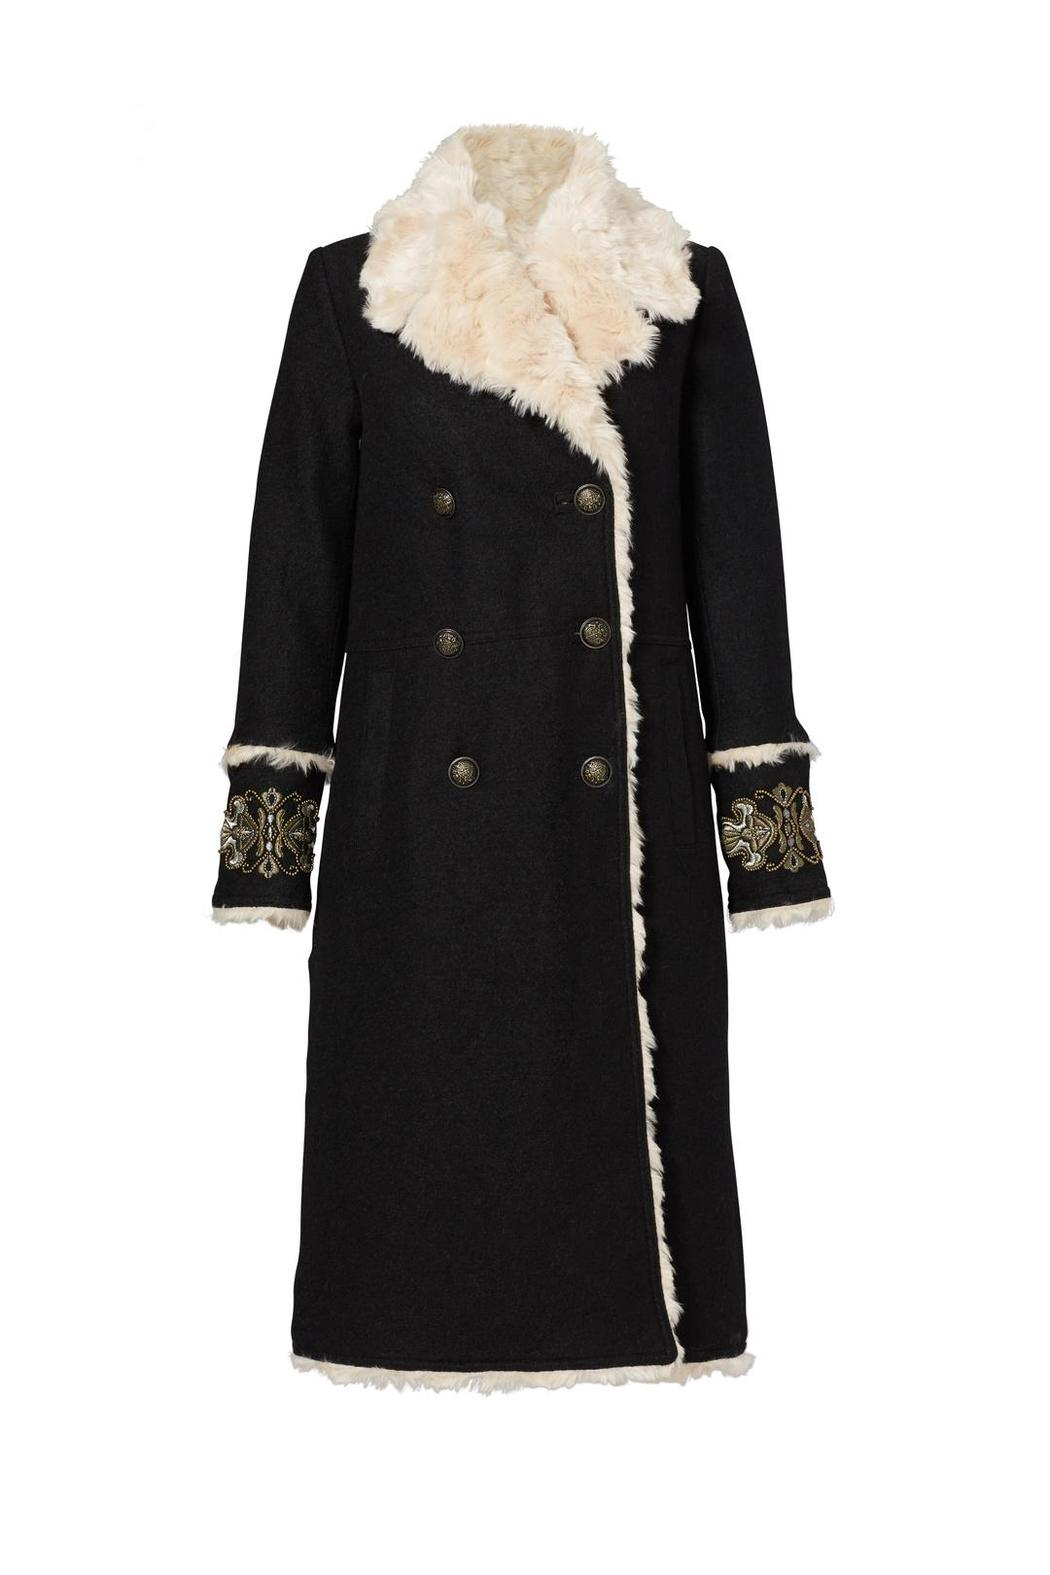 Free People Faux Shearling Coat - Main Image